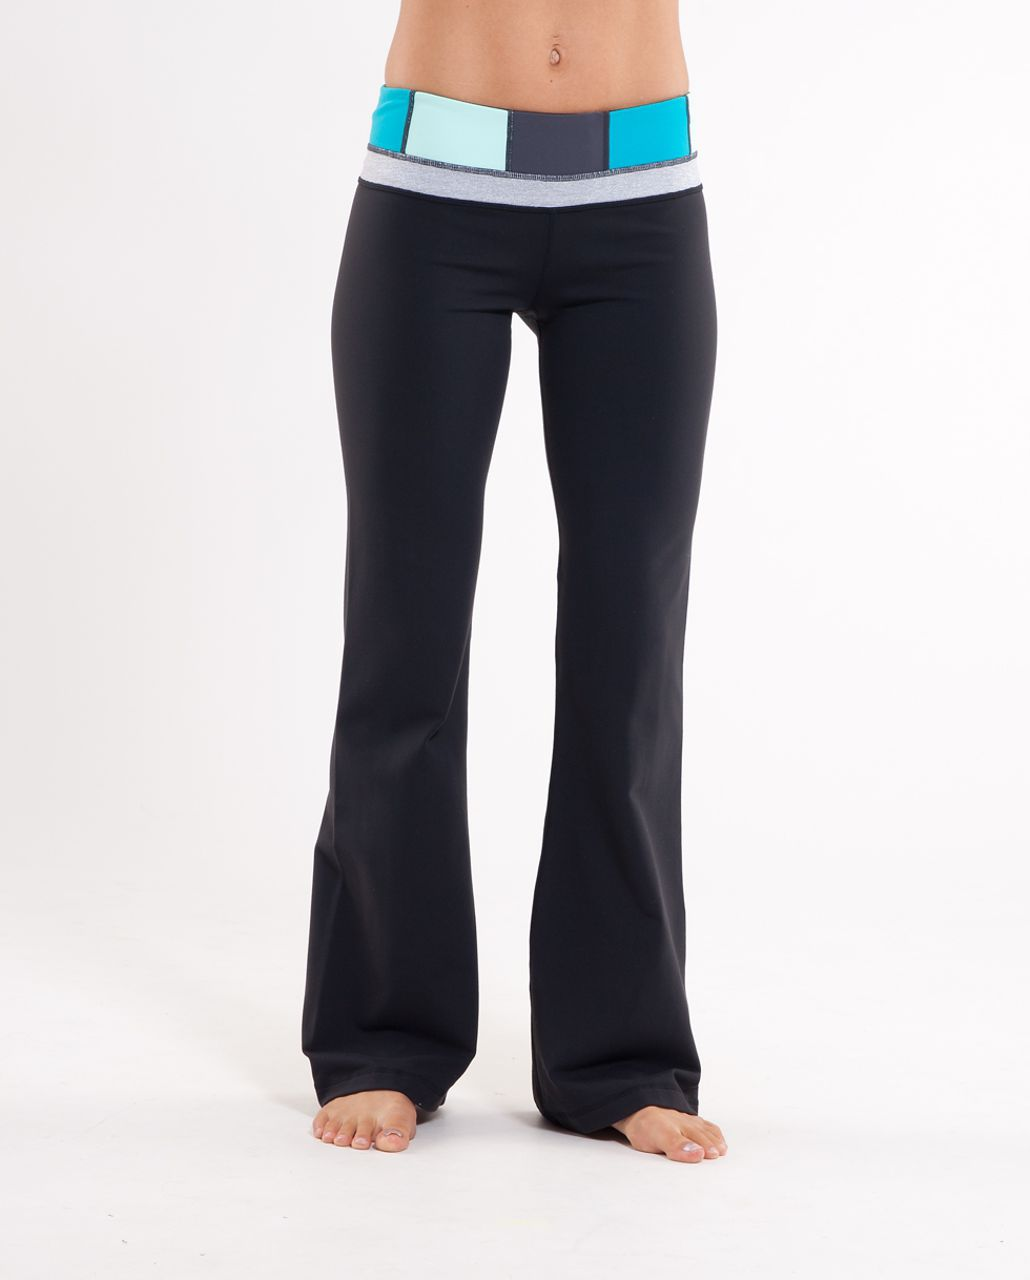 Lululemon Groove Pant (Tall) - Black /  Quilt Summer 2